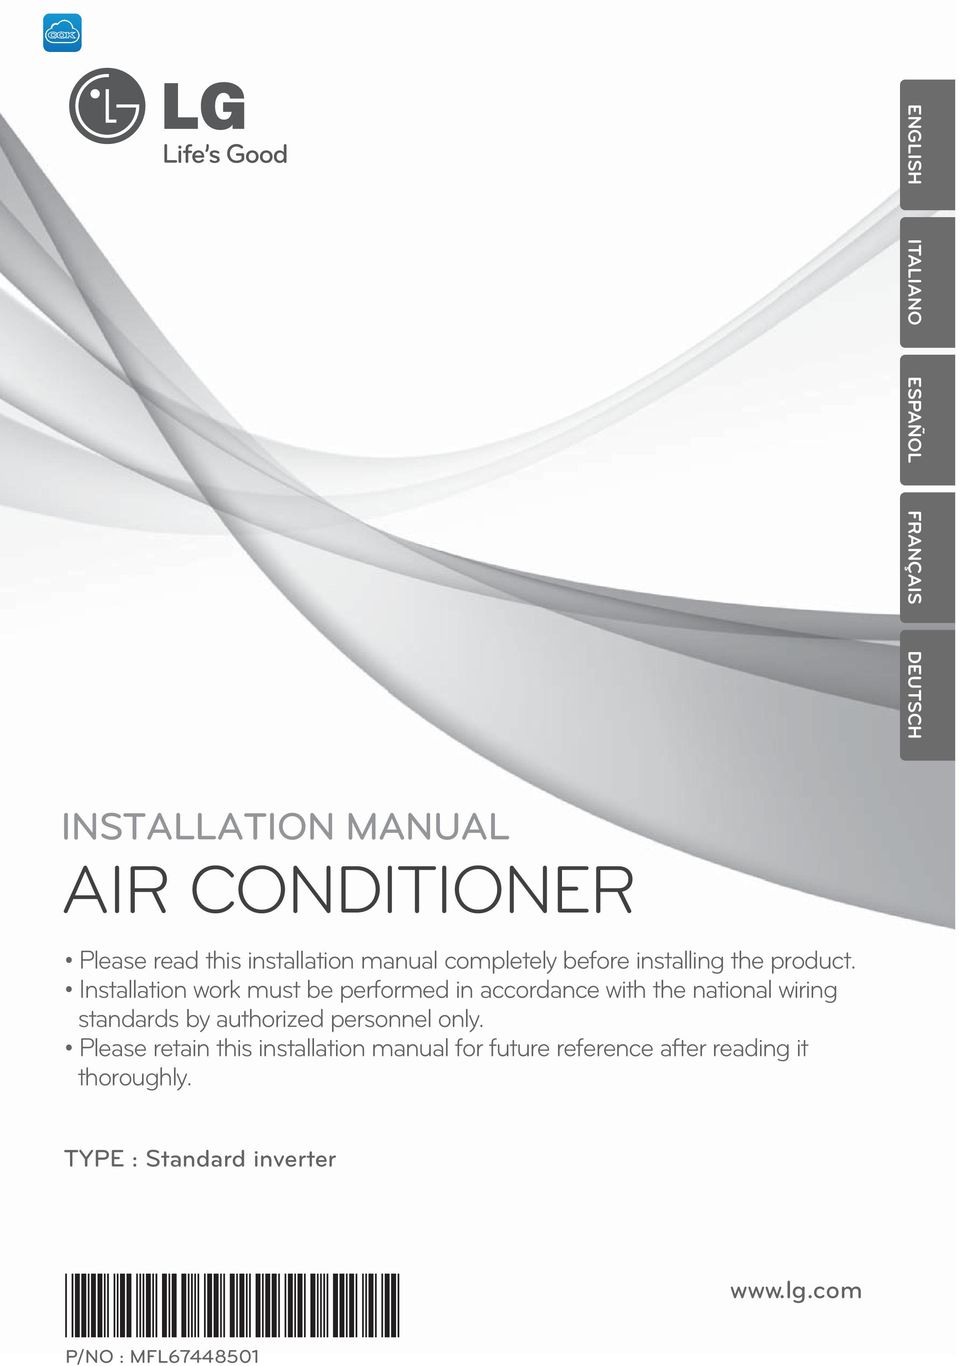 Air Conditioner Installation Manual Pdf Lg Wiring Diagram Work Must Be Performed In Accordance With The National Standards By Authorized 2 Single A